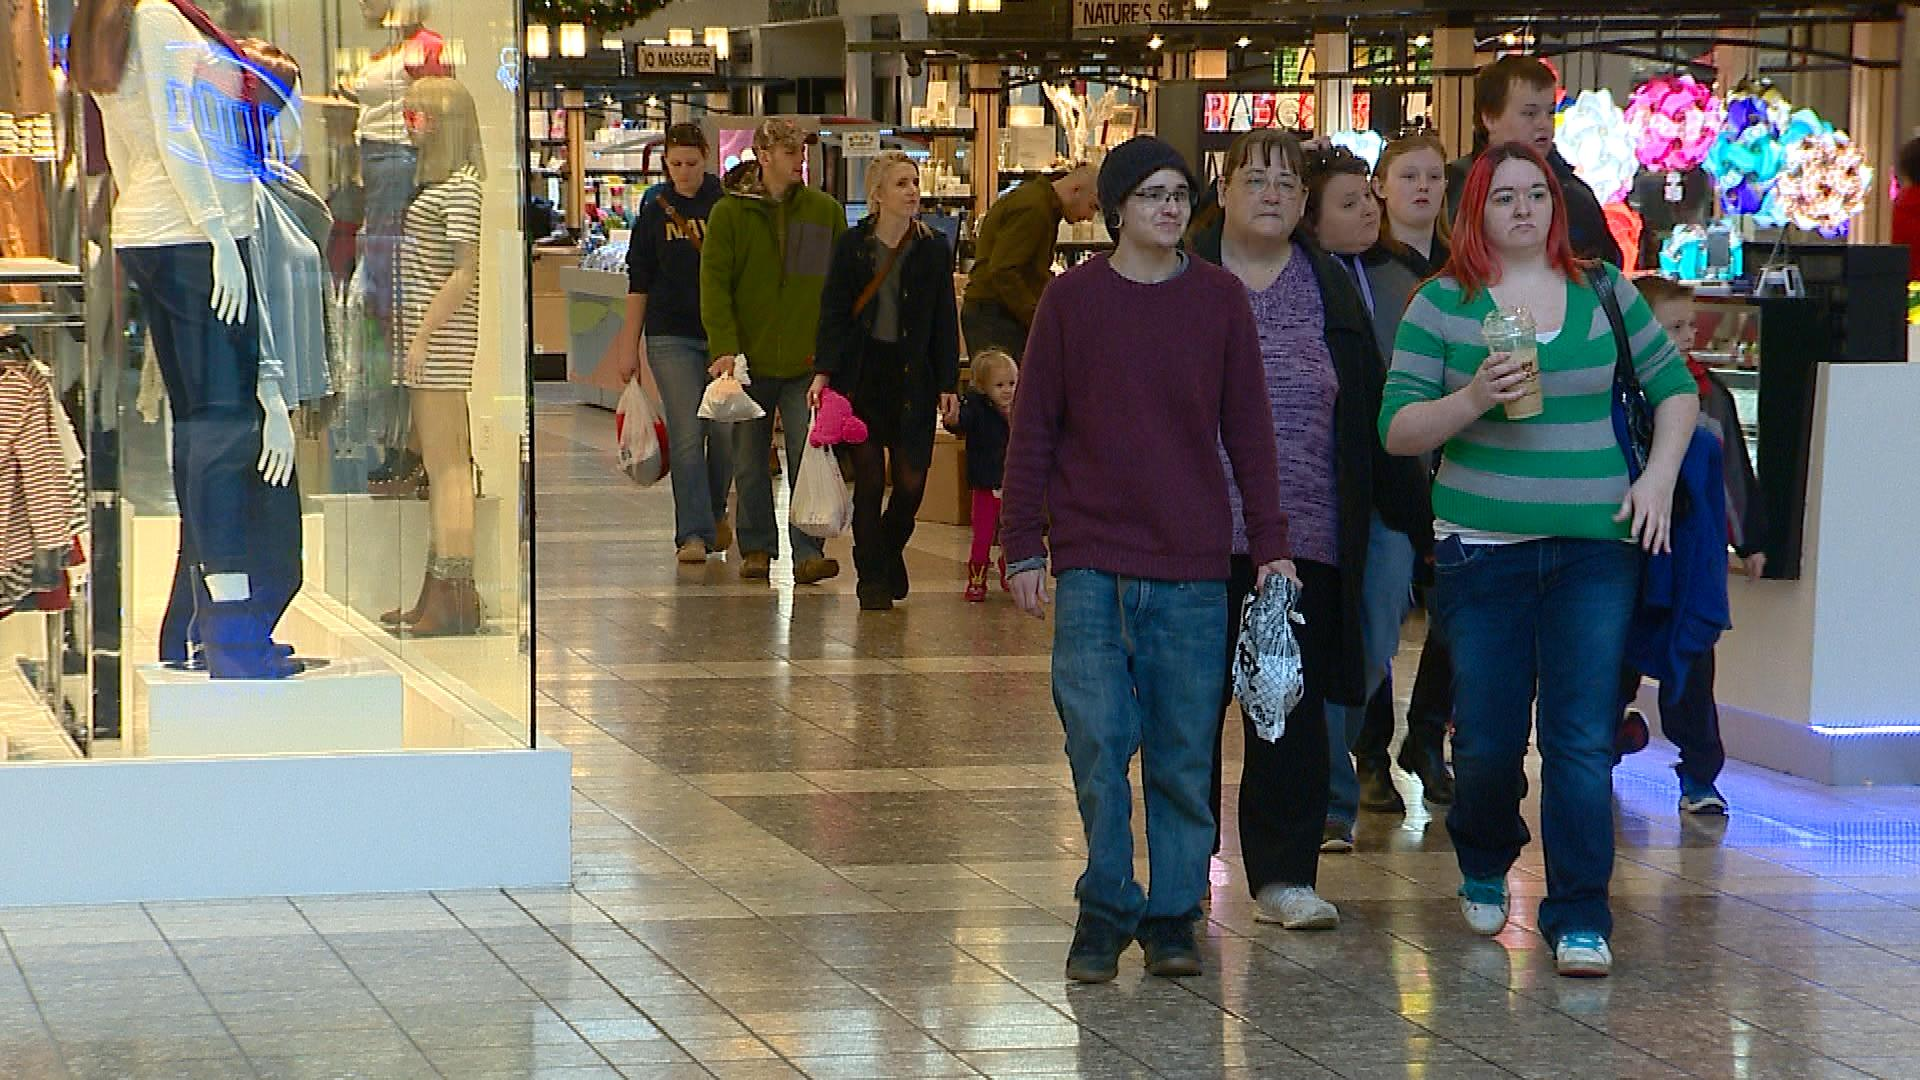 Last-minute shoppers are in a frenzy at the Fox River Mall in Grand Chute, Dec. 24, 2015. (WLUK image)